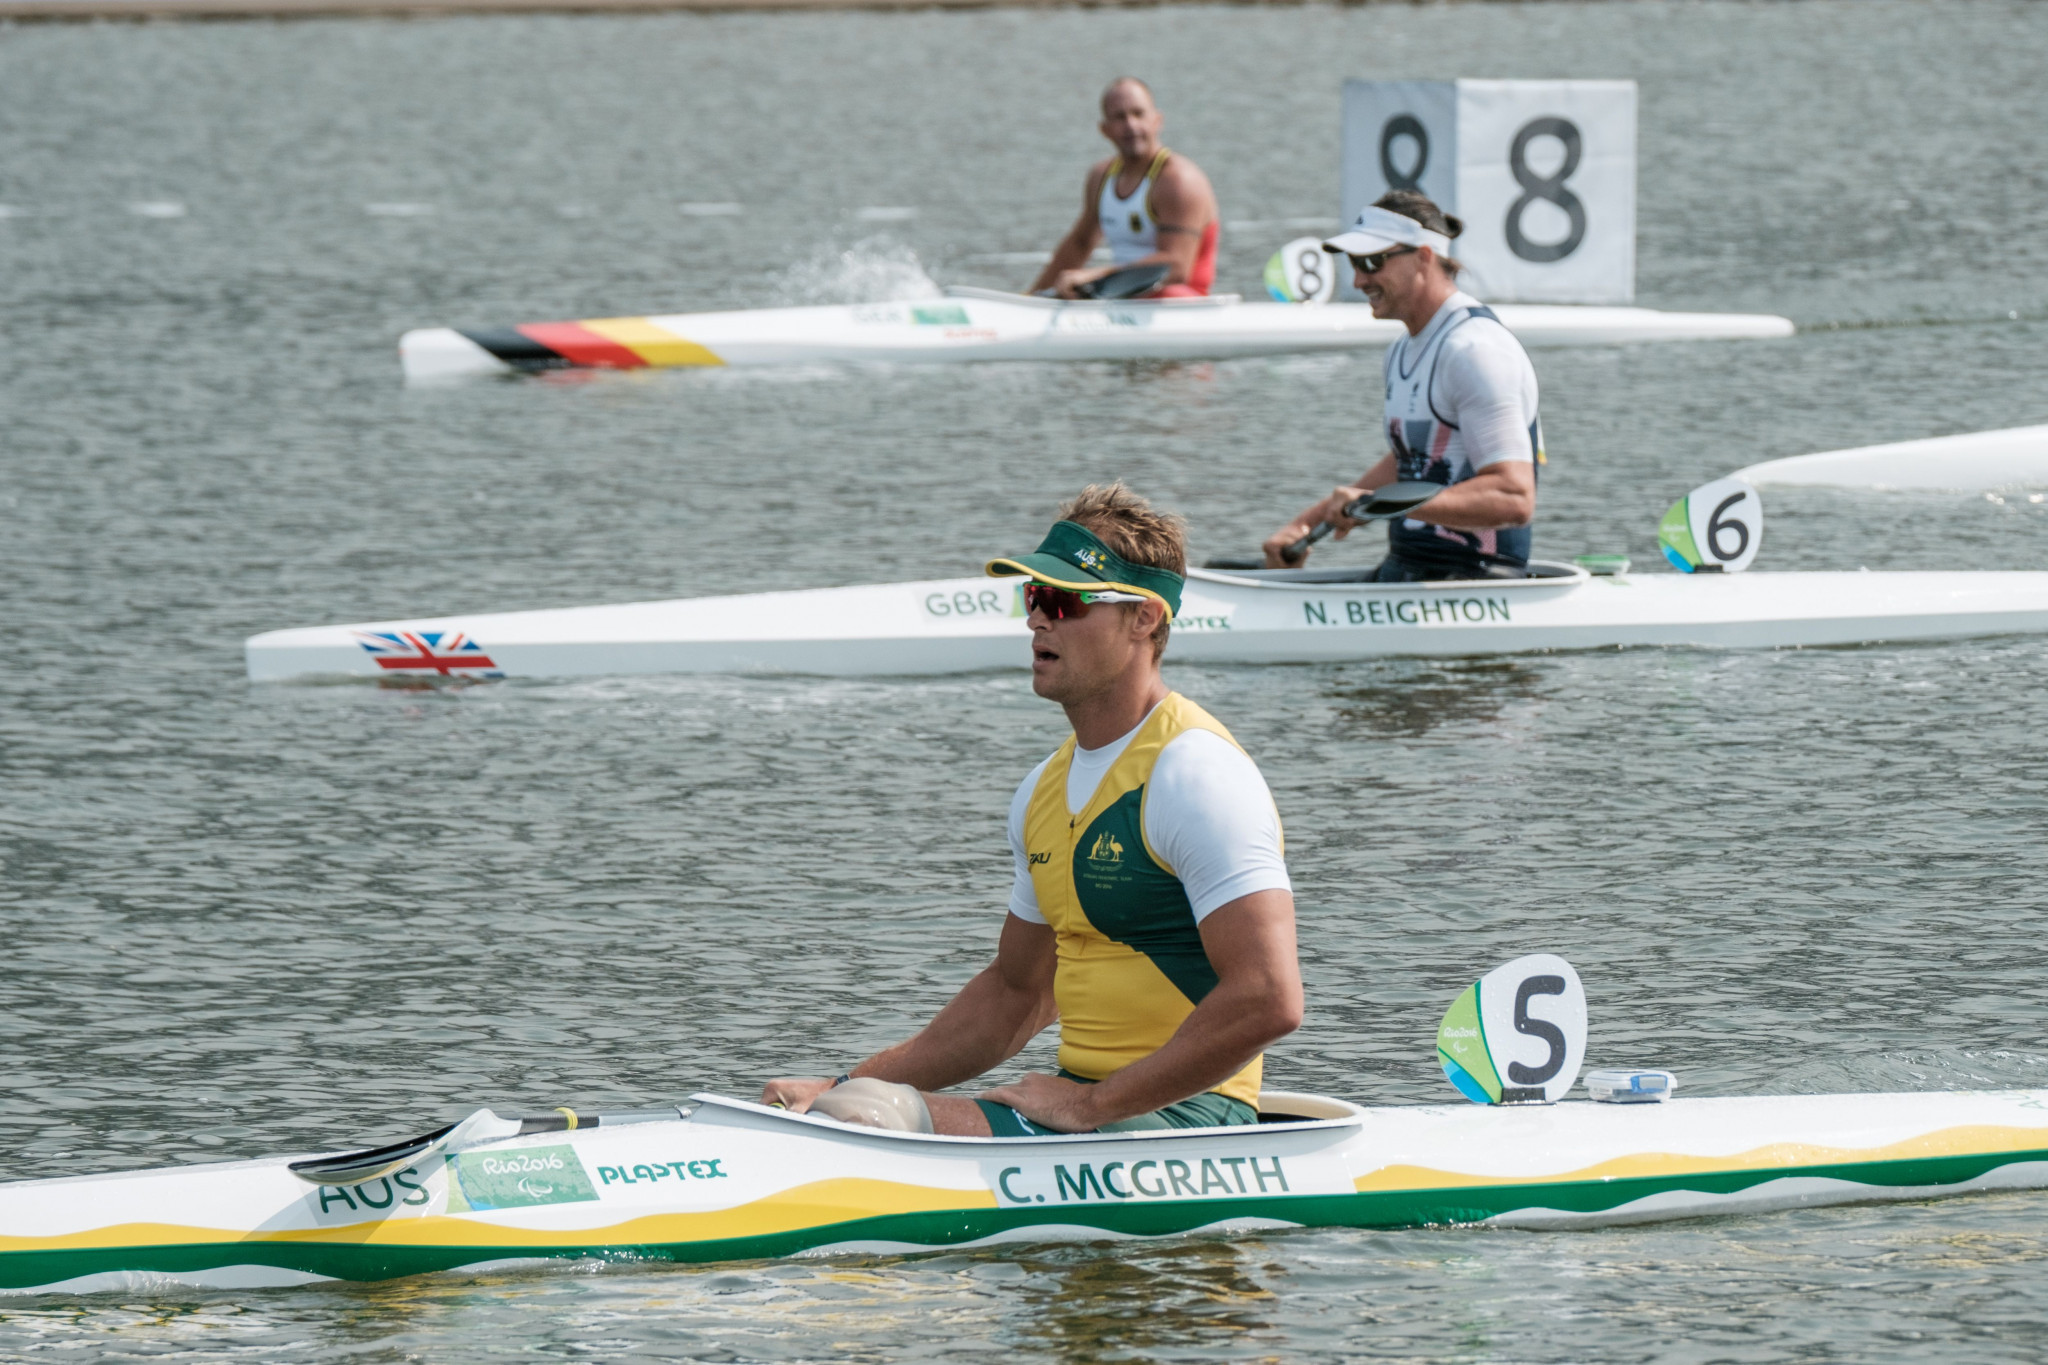 Hart hopeful of Paralympics debut while Ripa aims for fourth Games at Paracanoe qualifying event